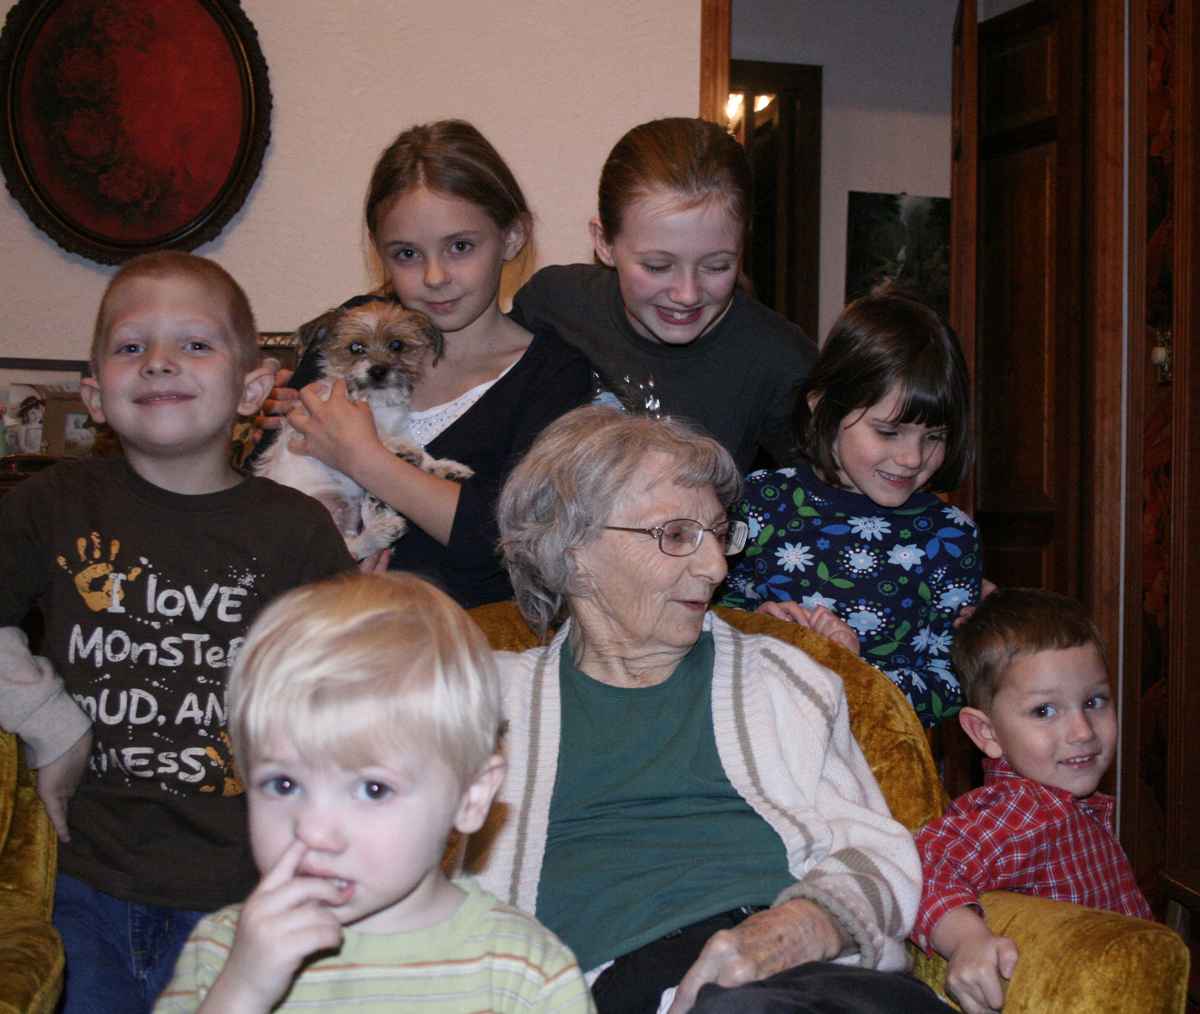 When it came time to try and get them all wrangled in for a group photo with Great Grandma, Hunter wasn't really in the mood anymore.  But he did stay there long enough to capture this, which he will be teased about the rest of his life I'm sure. I know this because as I was taking pictures, my Mom recounted a story about how I was always the one crying in the group shots when we were little.  Thanks Mom!